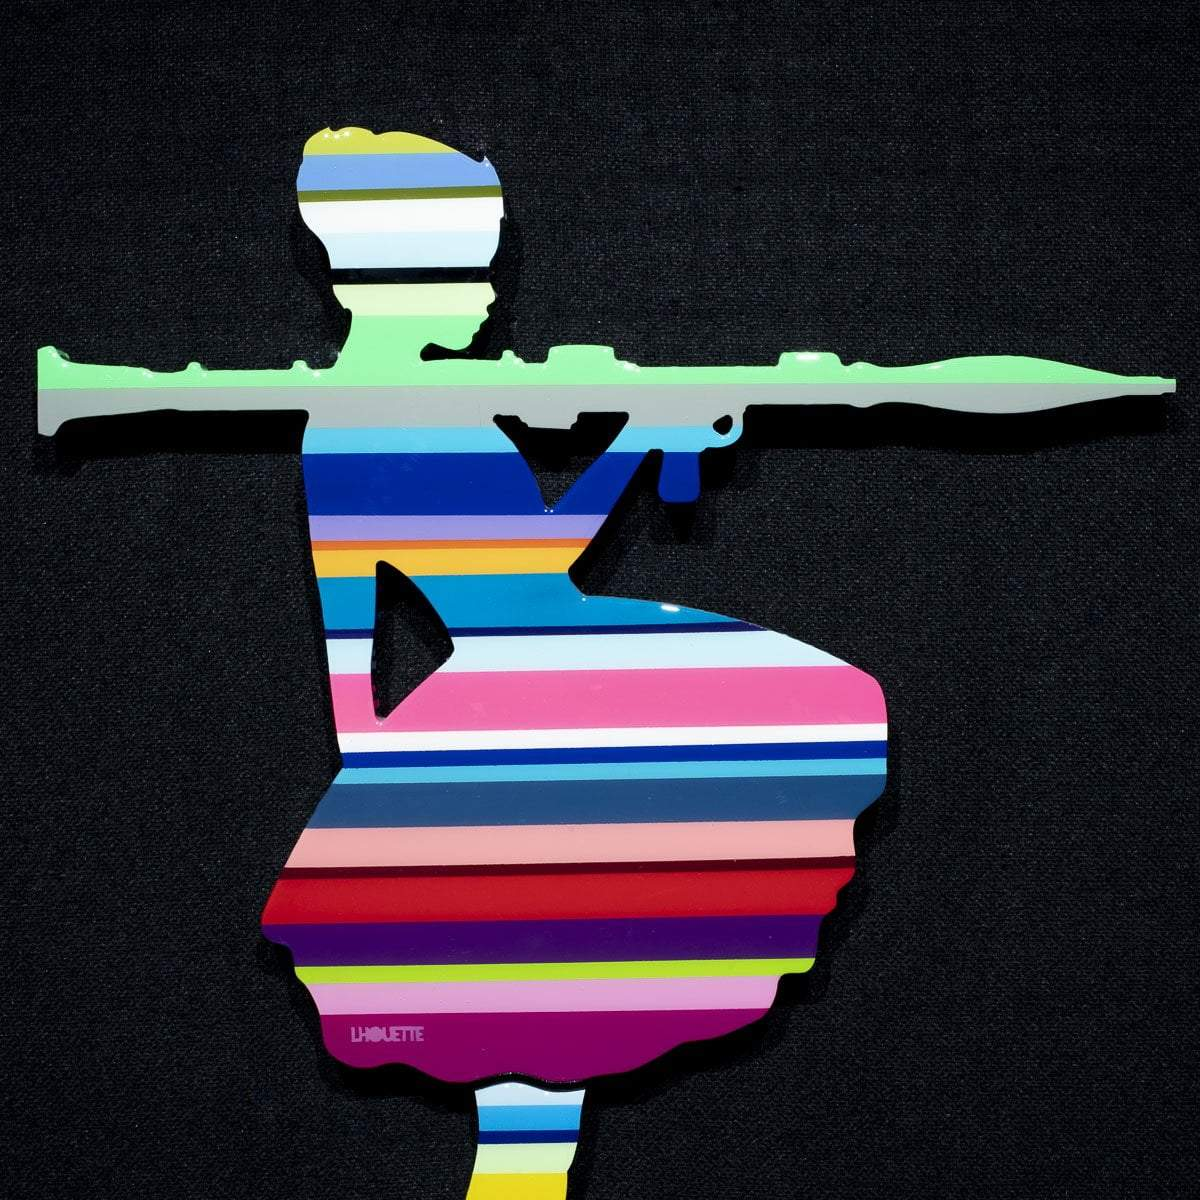 Bazooka Jo Miniature - Striped - Original Wall Sculpture Lhouette Original